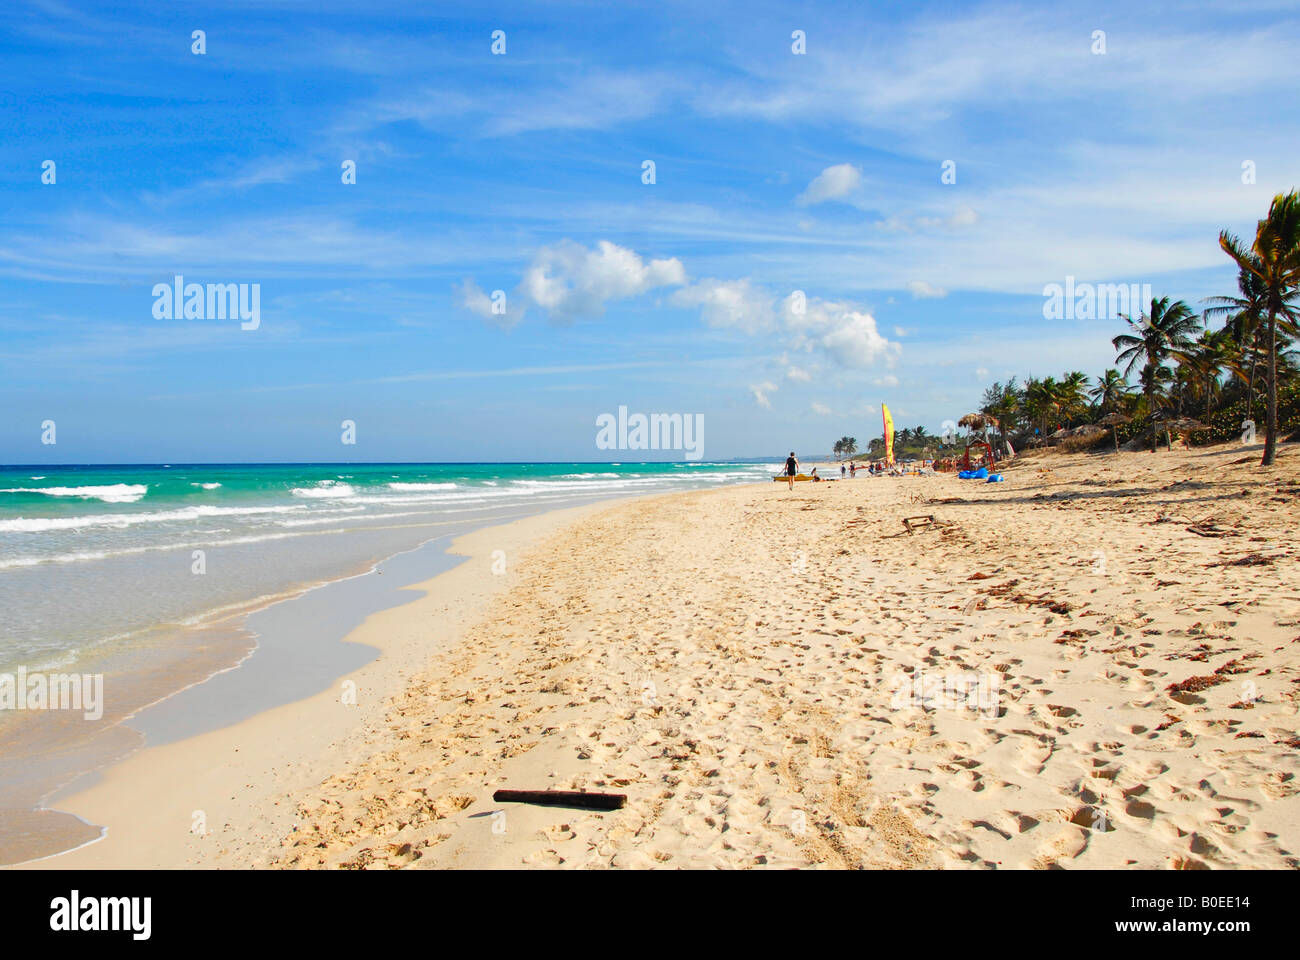 The beach of Playa del Este Havana Cuba - Stock Image